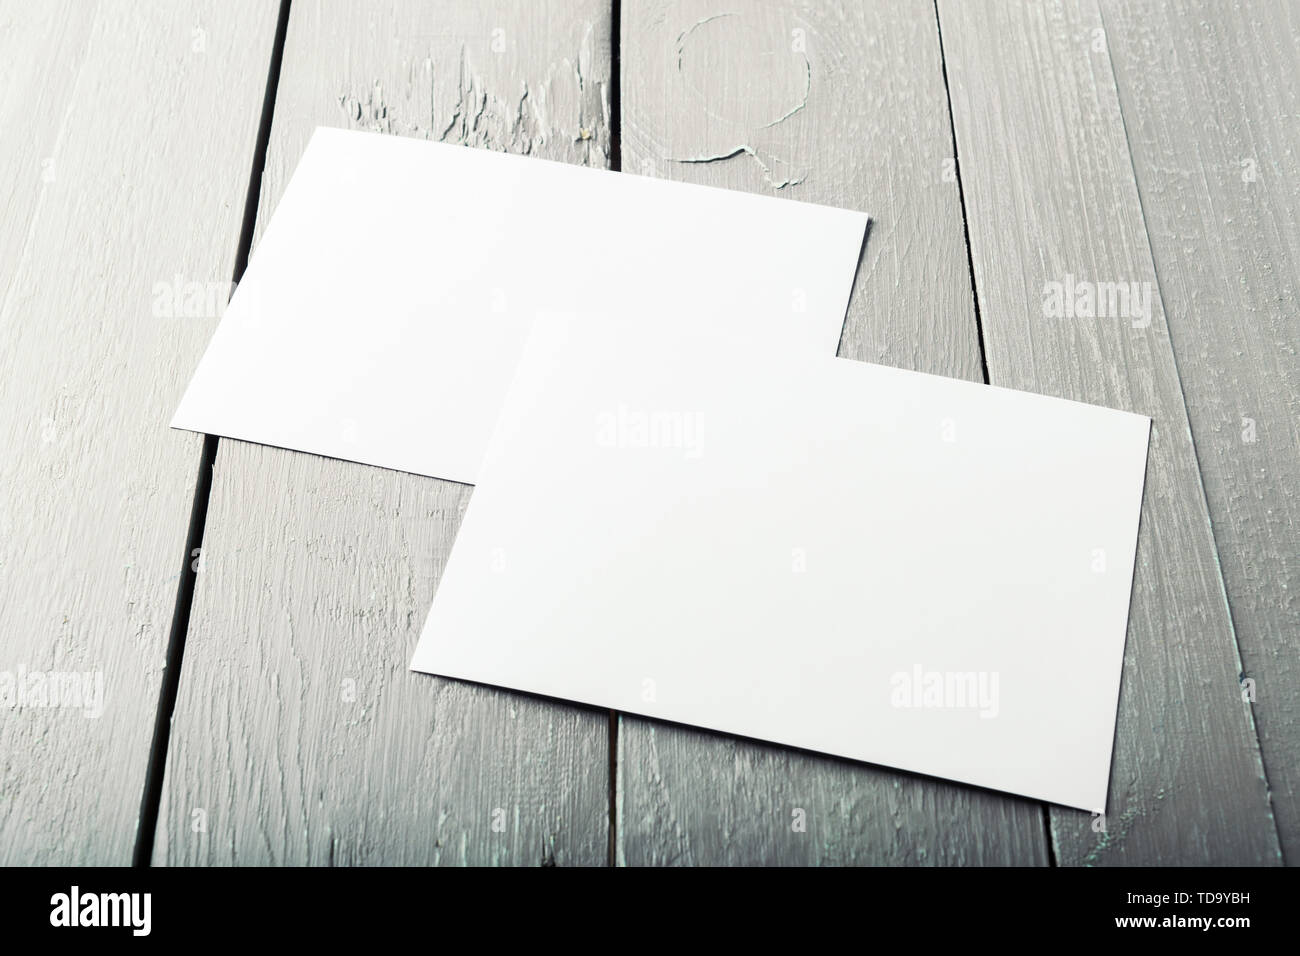 blank business cards on a wooden background - Stock Image